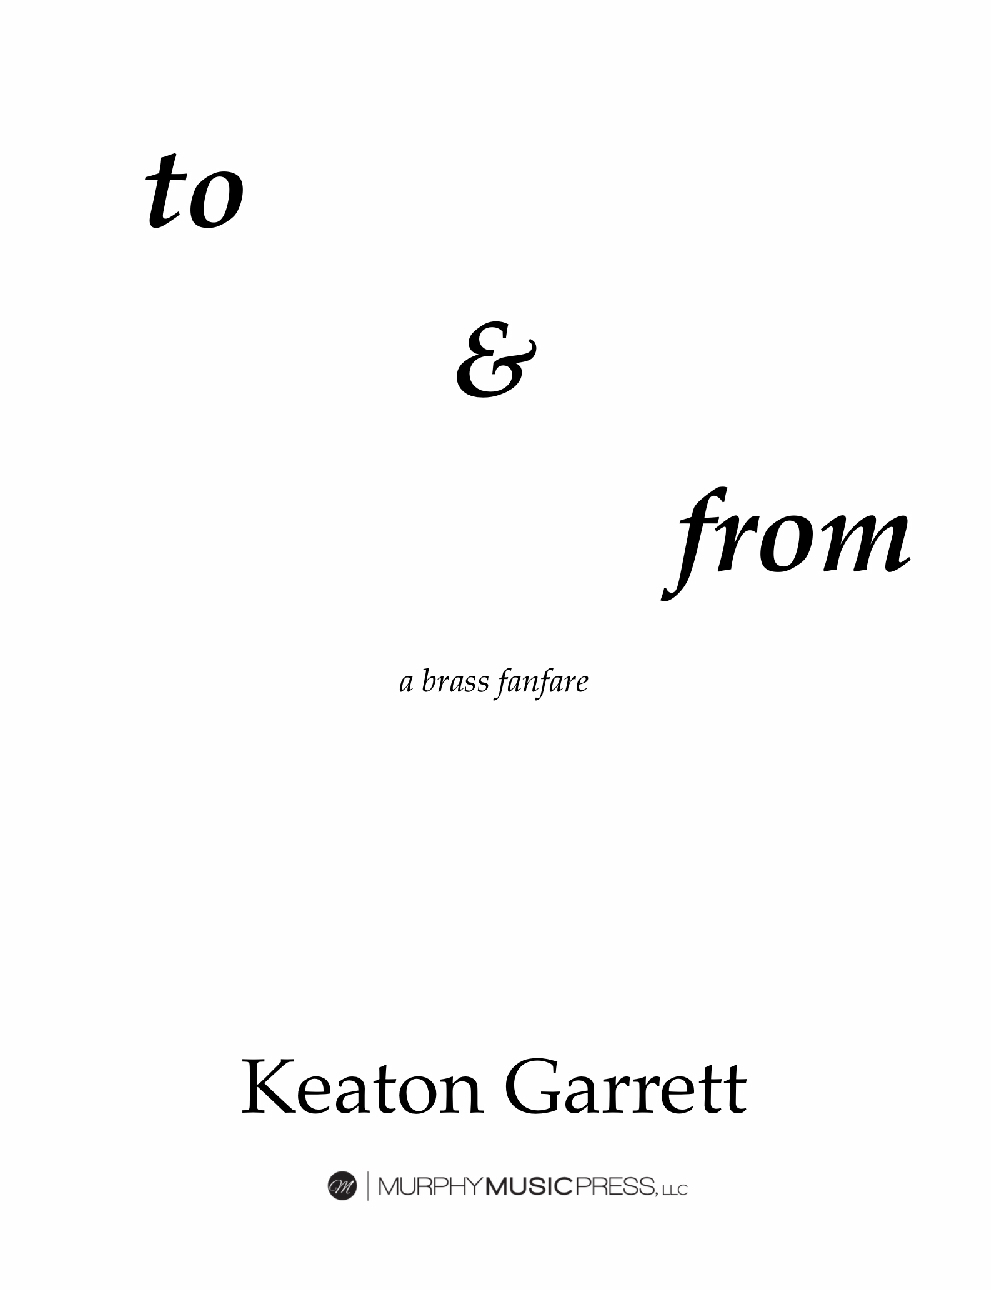 To & From by Keaton Garrett